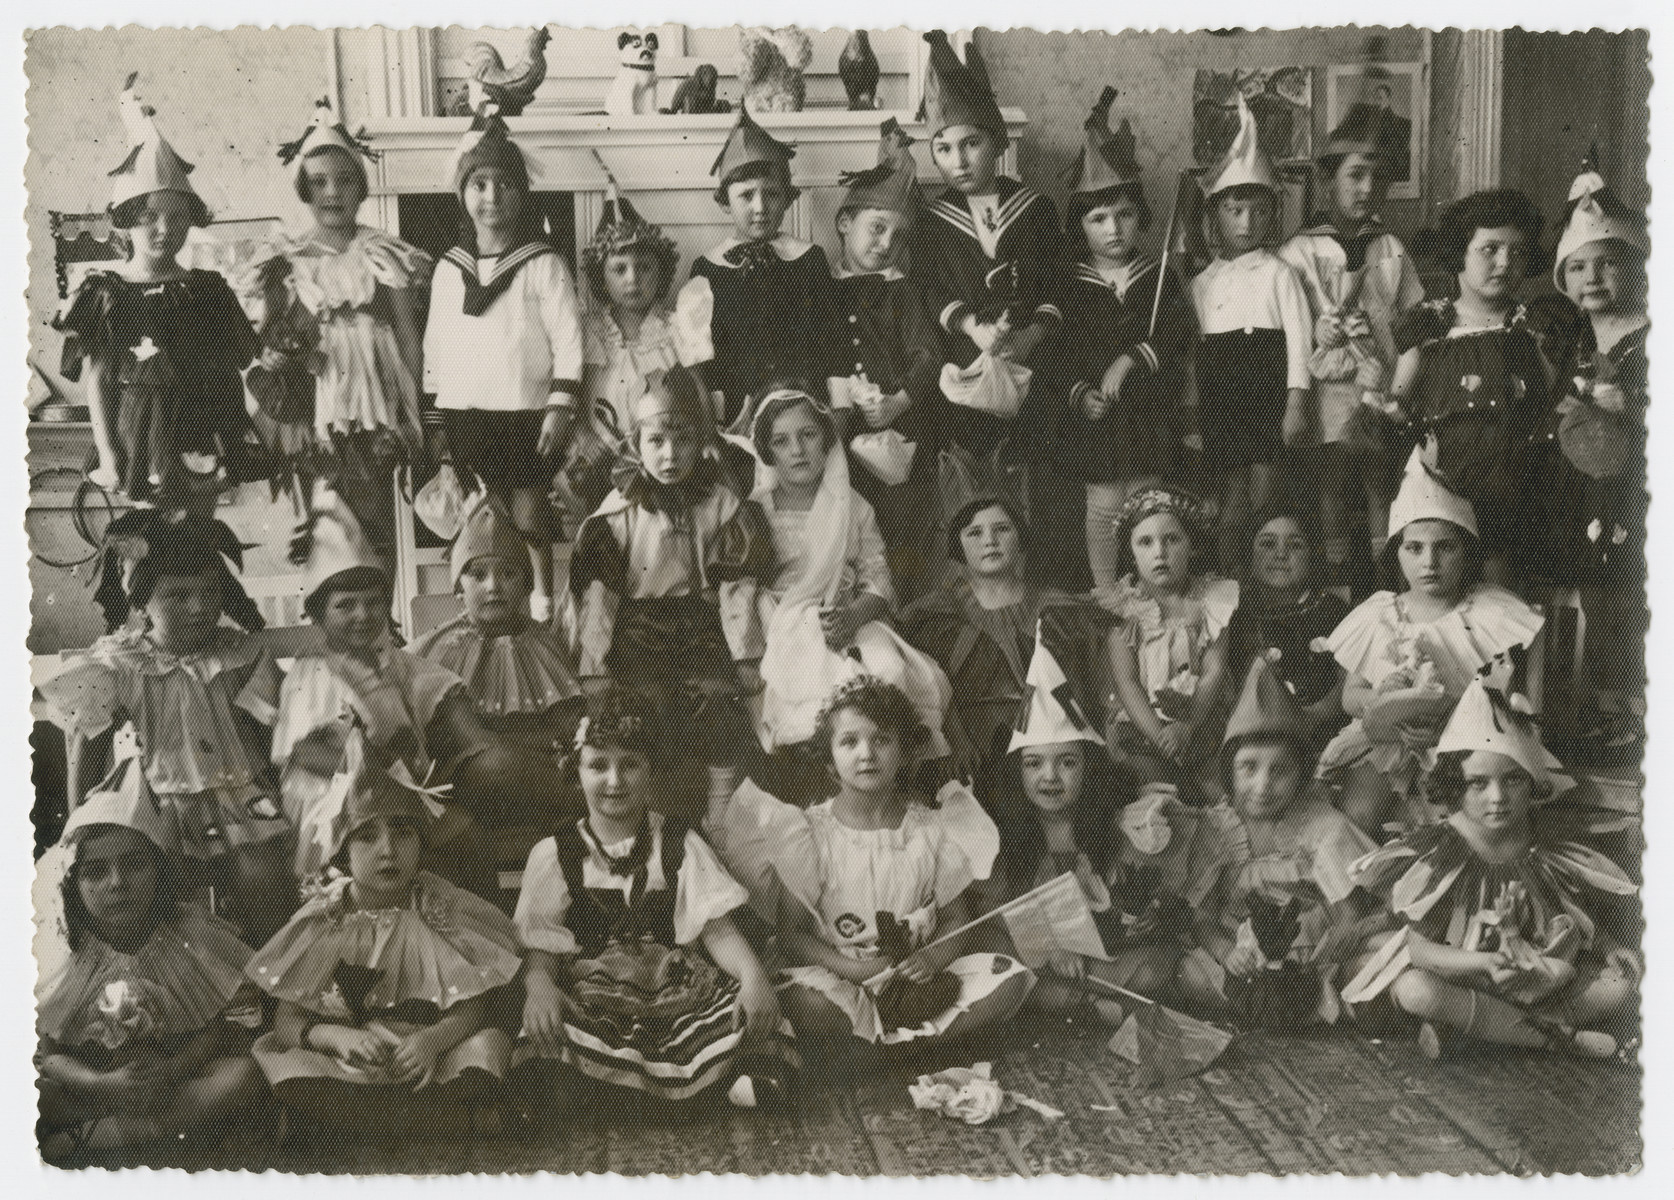 A group portrait of children dressed up in [Purim] costumes.